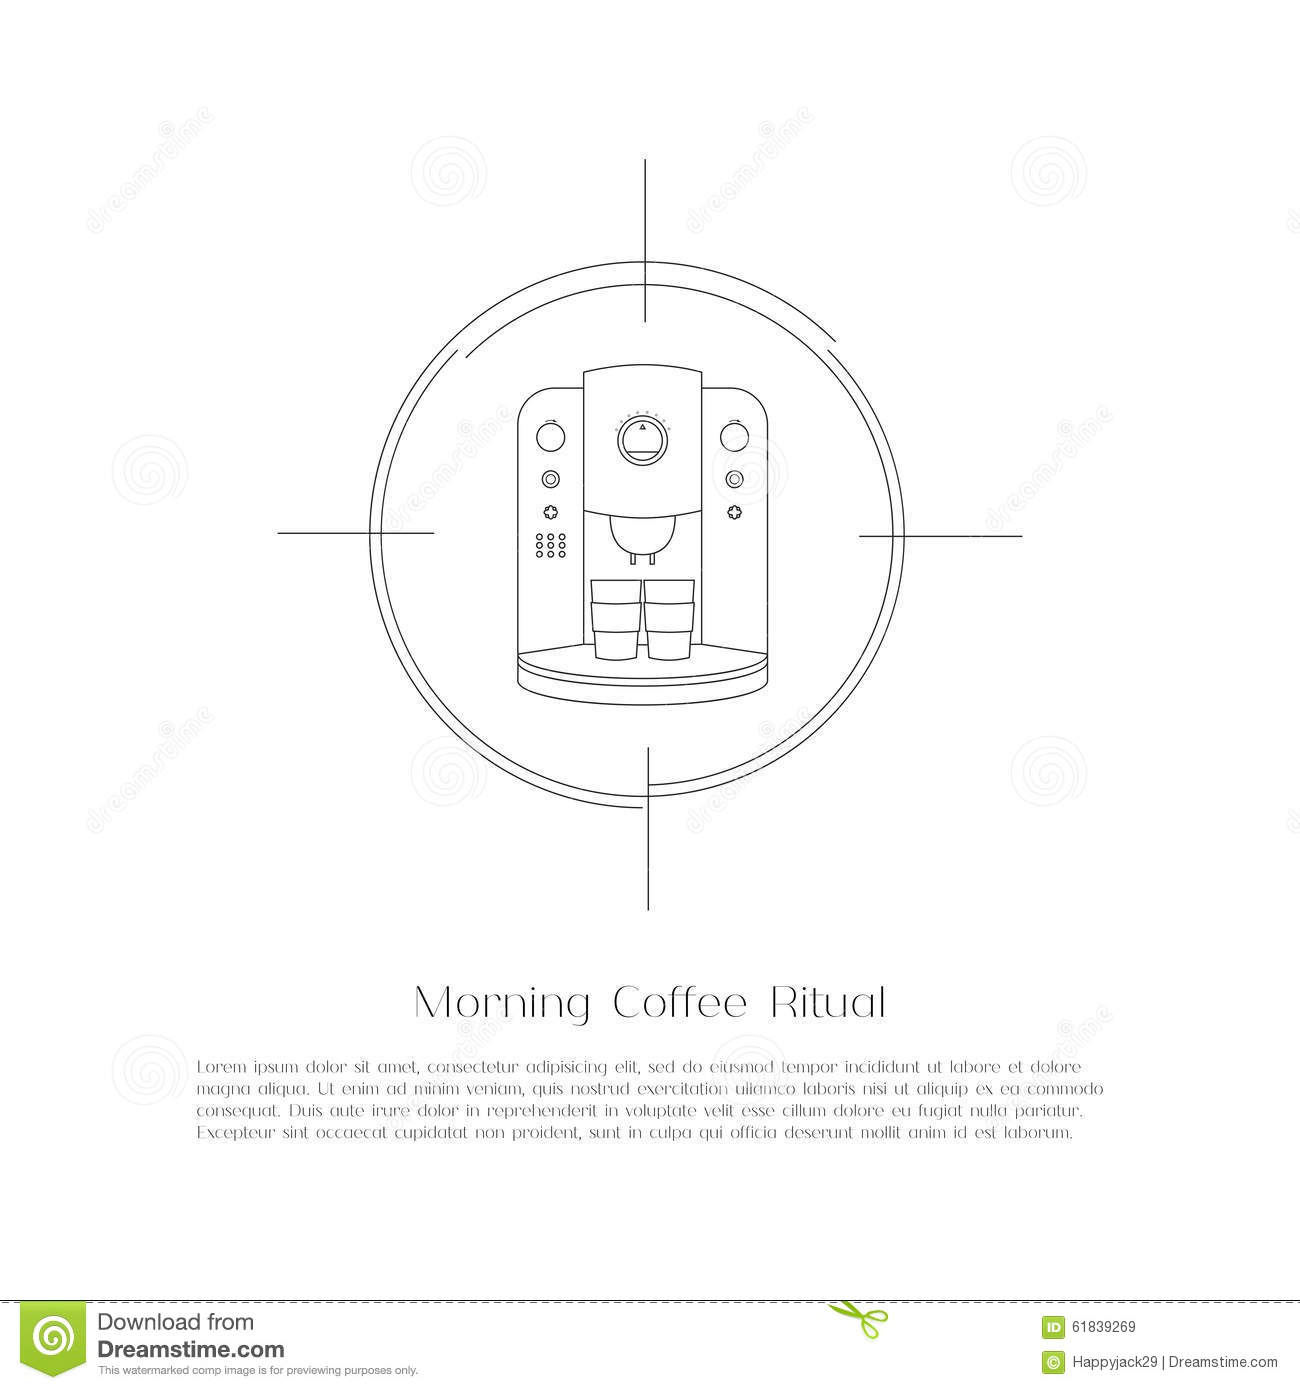 Simple Coffee Maker Diagram Schematic Diagrams Wiring Abstract Flat Machine Stock Vector Illustration Of Keurig Download